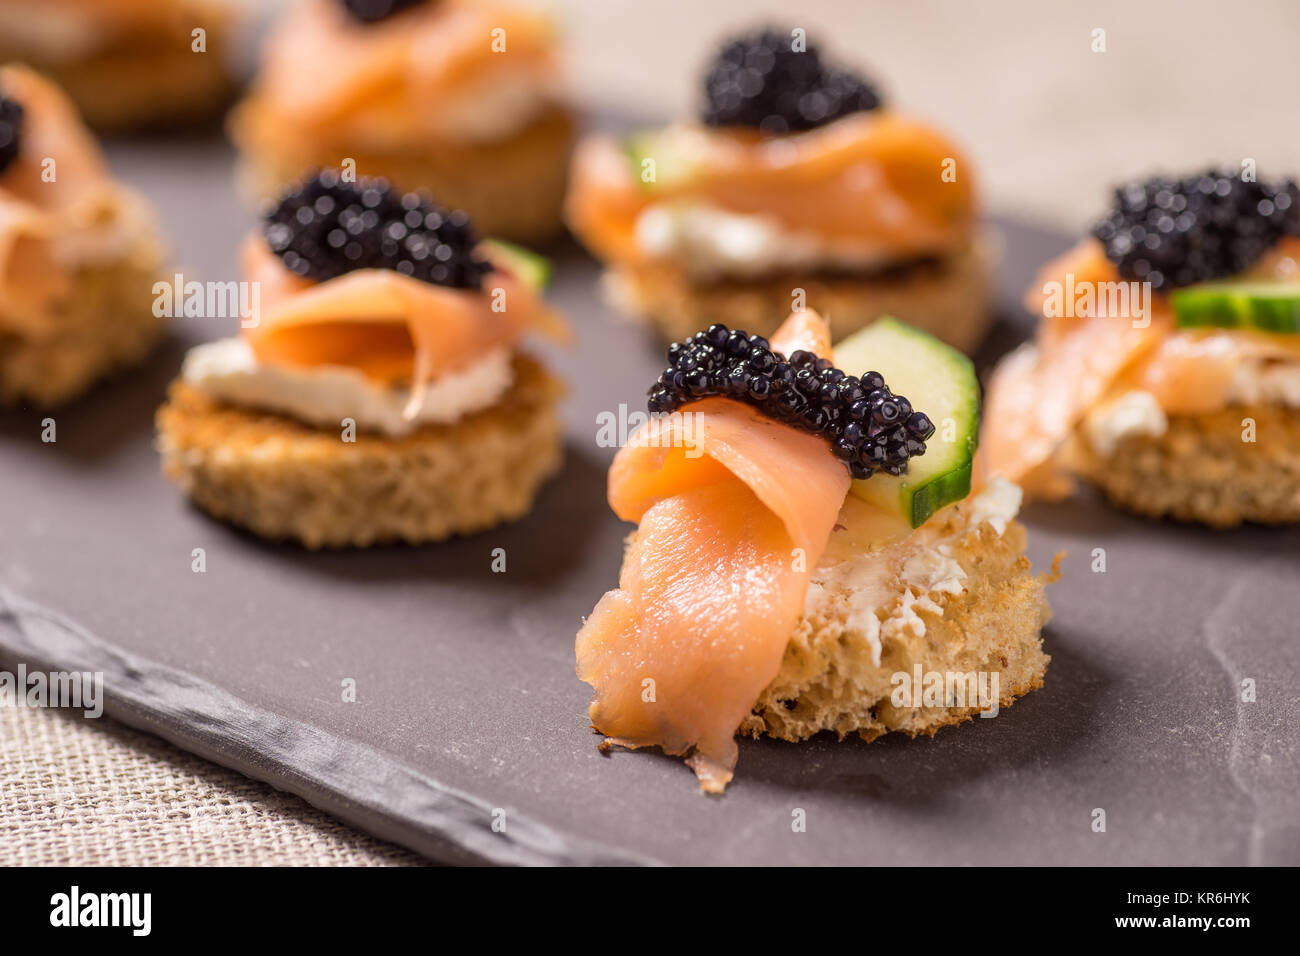 Smoked Salmon Canapes with Sour Cream and Caviar - Stock Image